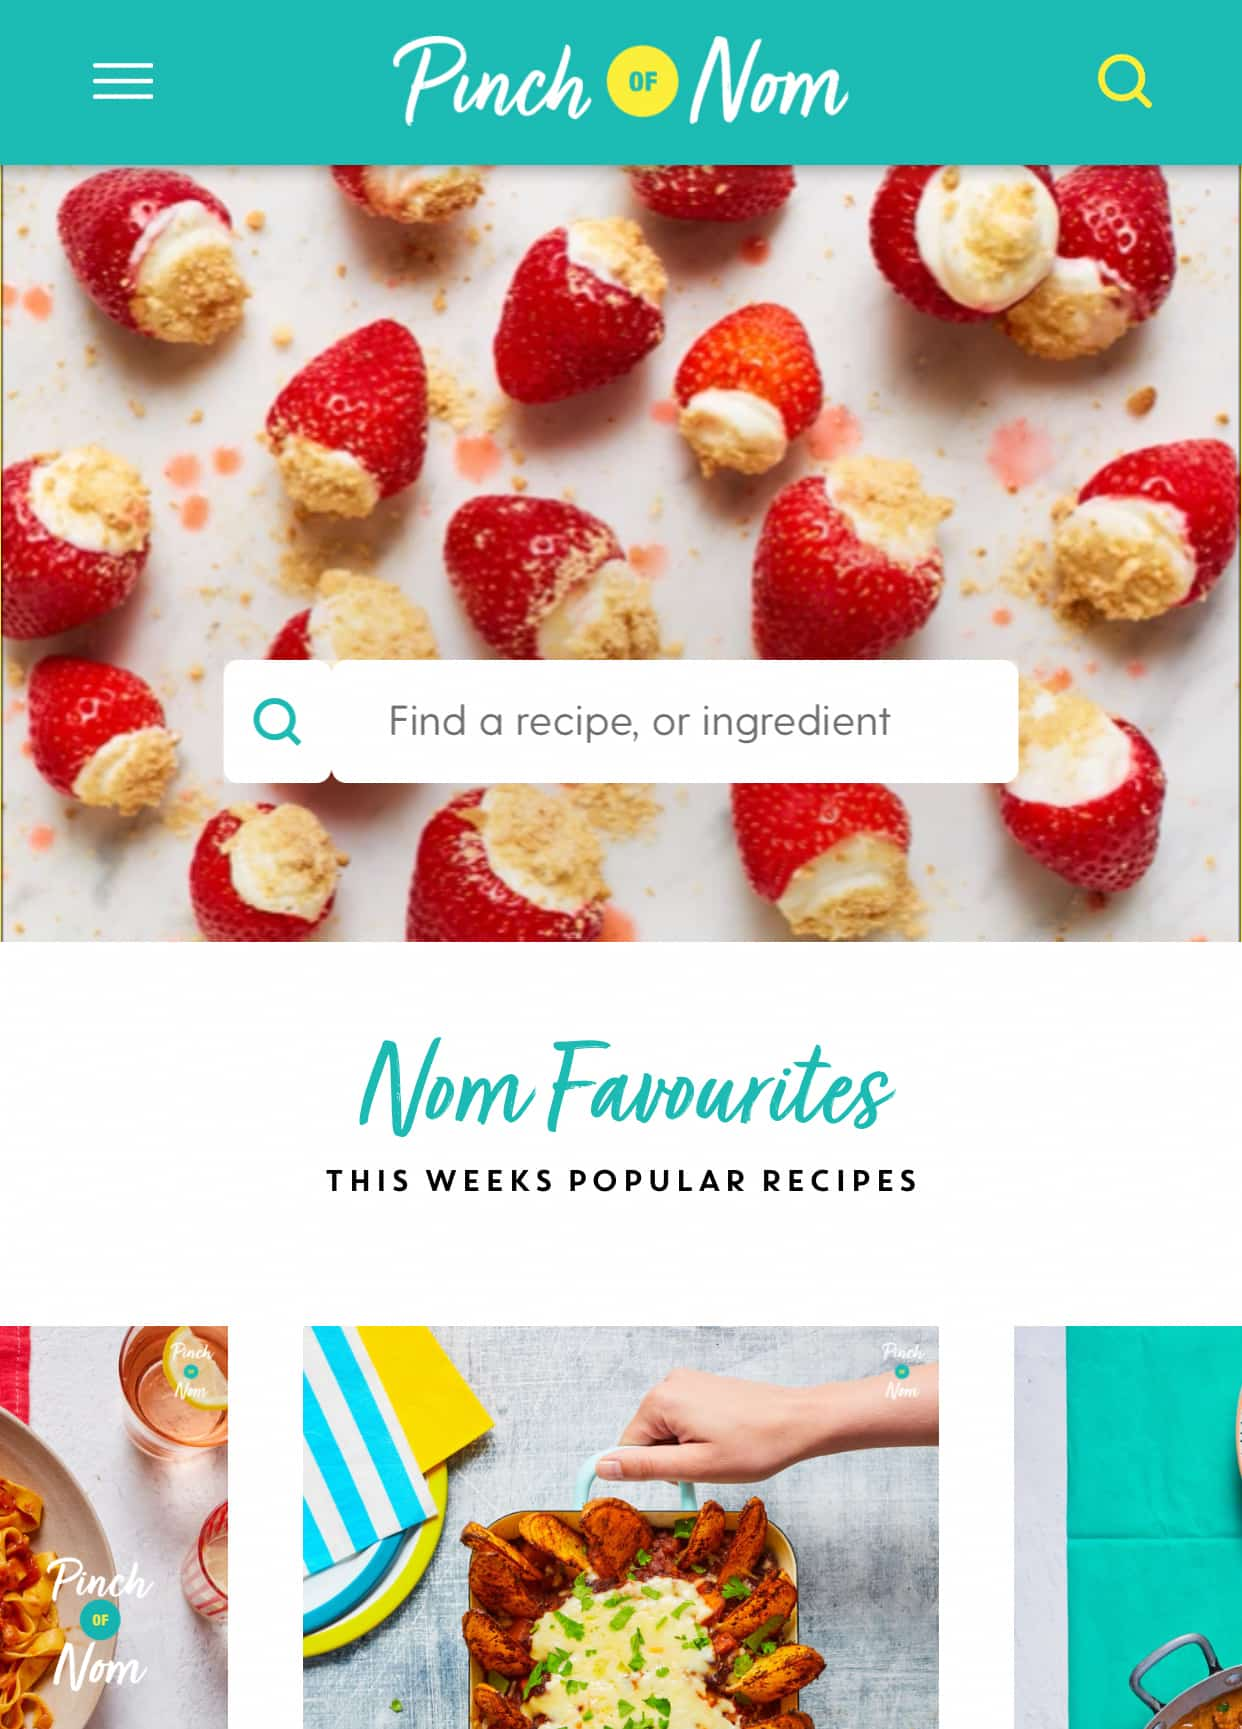 How to sign up and in to the website - Pinch of Nom